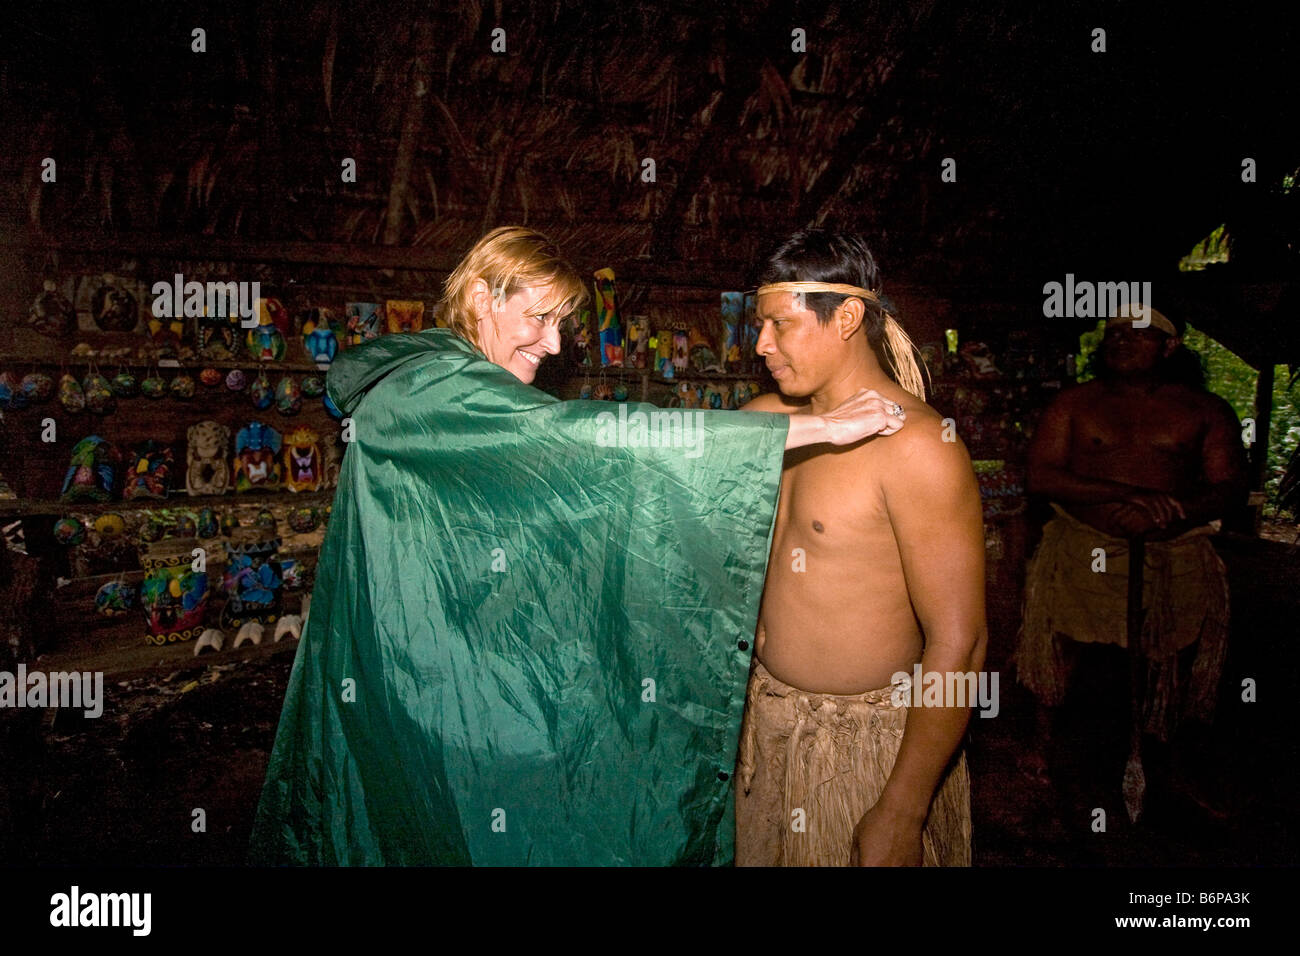 Visitors exchange traditional greeting with maleku indian member of visitors exchange traditional greeting with maleku indian member of inca tribe in a rainforest near arenal volcano in costa rica m4hsunfo